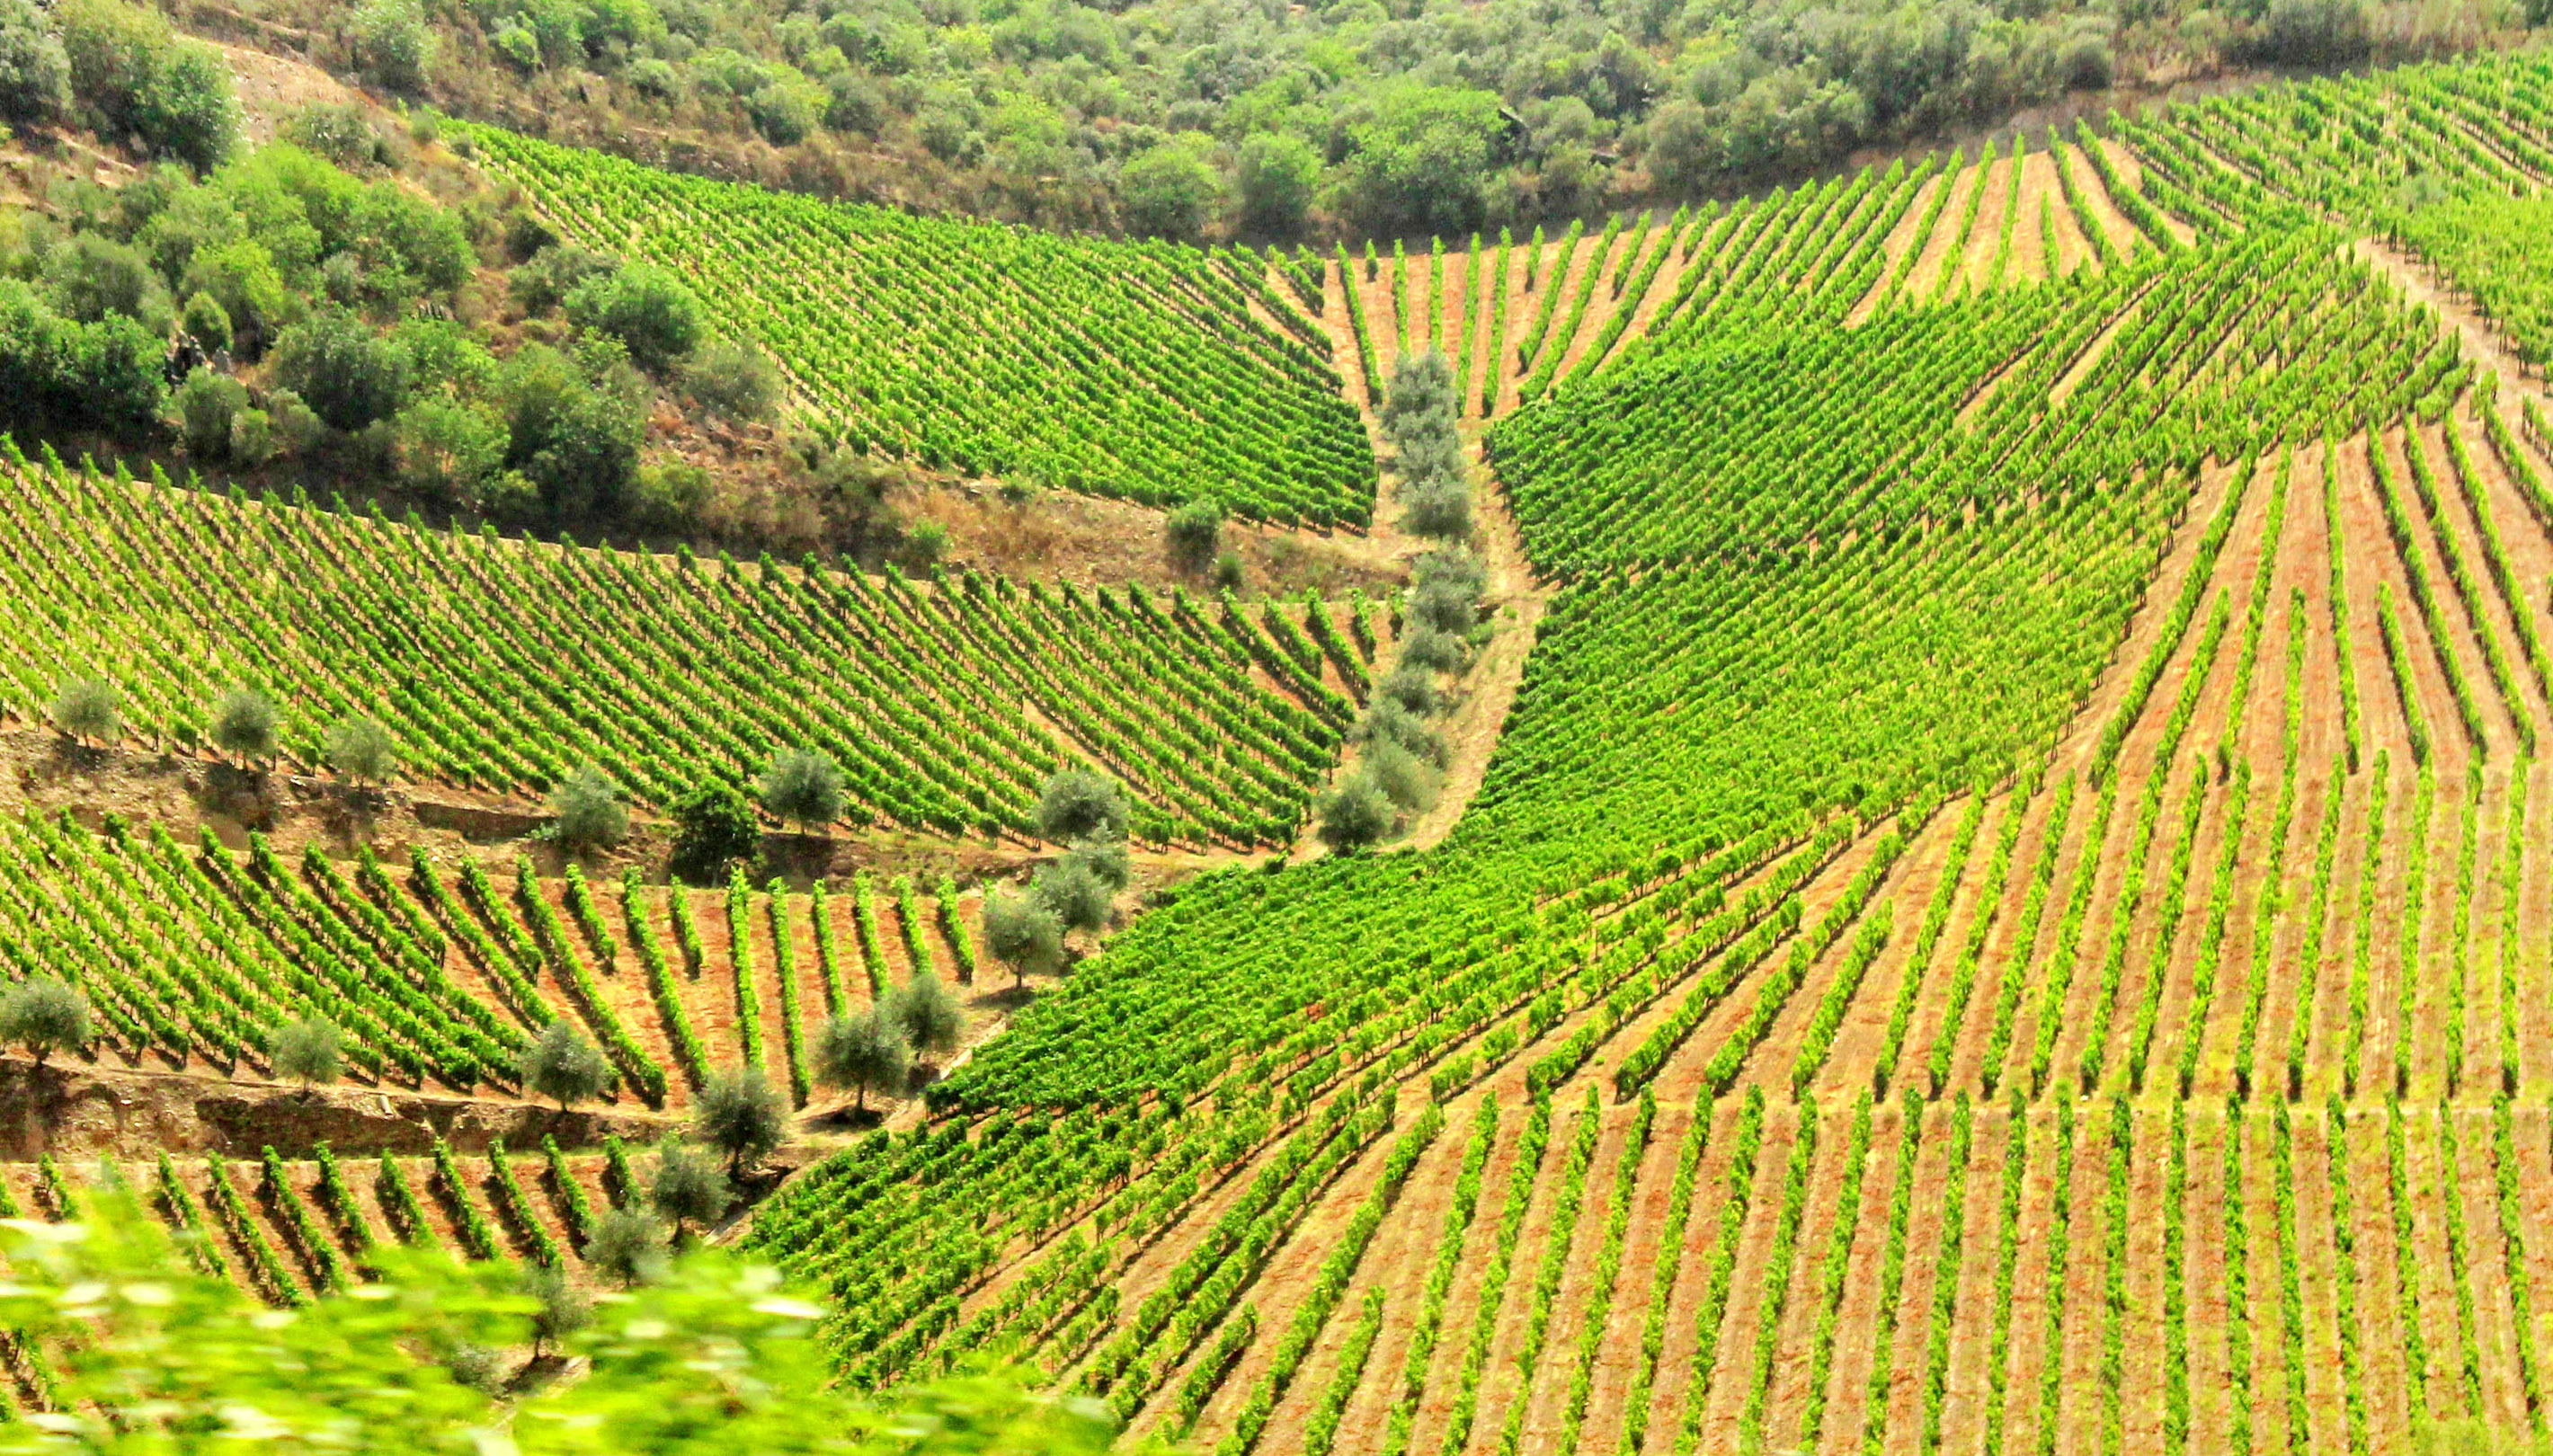 Mosaic of Vineyards and Olive Tree Groves - Douro Valley, Agriculture, Port, Scenery, Sandeman, HQ Photo